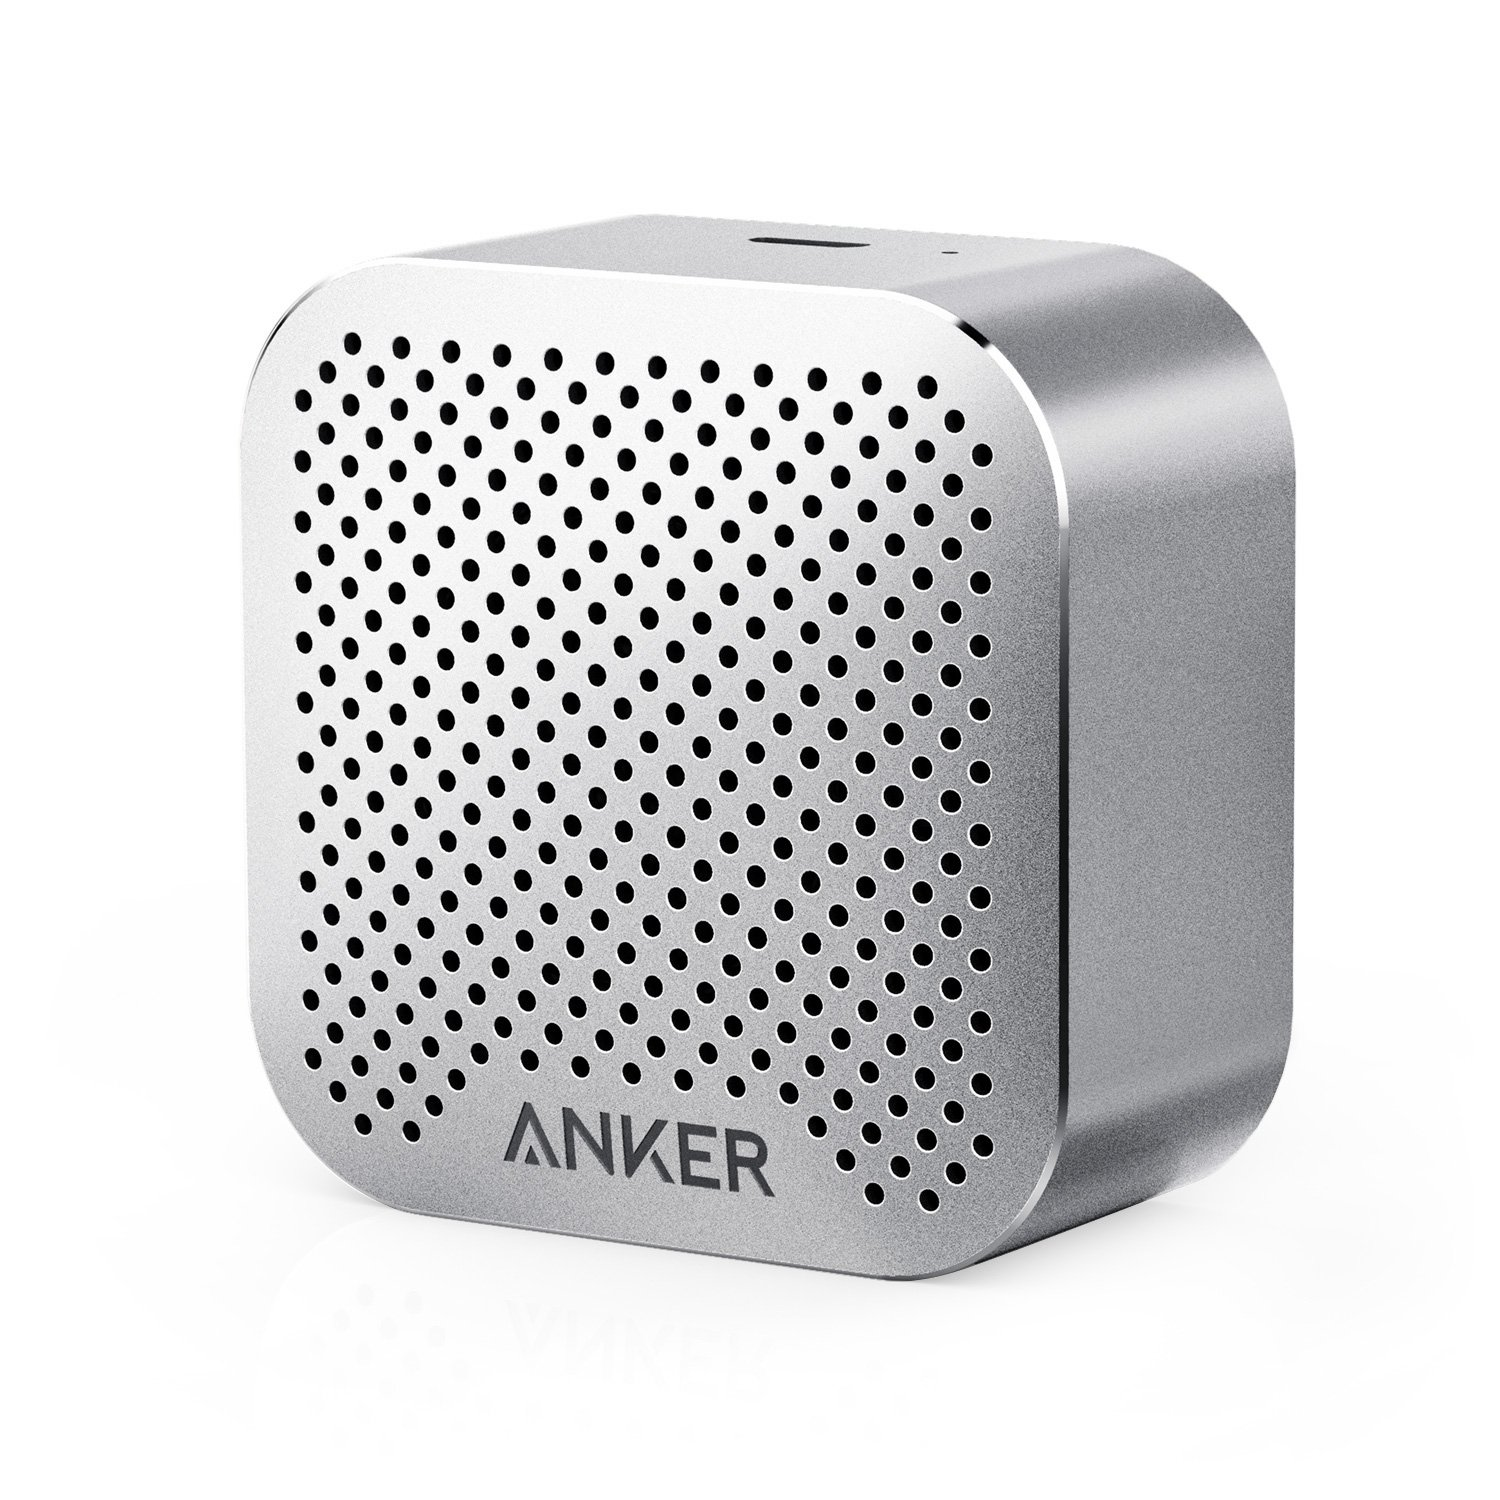 Anker SoundCore Nano Bluetooth Speaker Big Sound, Super-Portable Wireless Speaker Built-in Mic iPhone 7, iPad, Samsung, Nexus, HTC, Laptops More - Gray